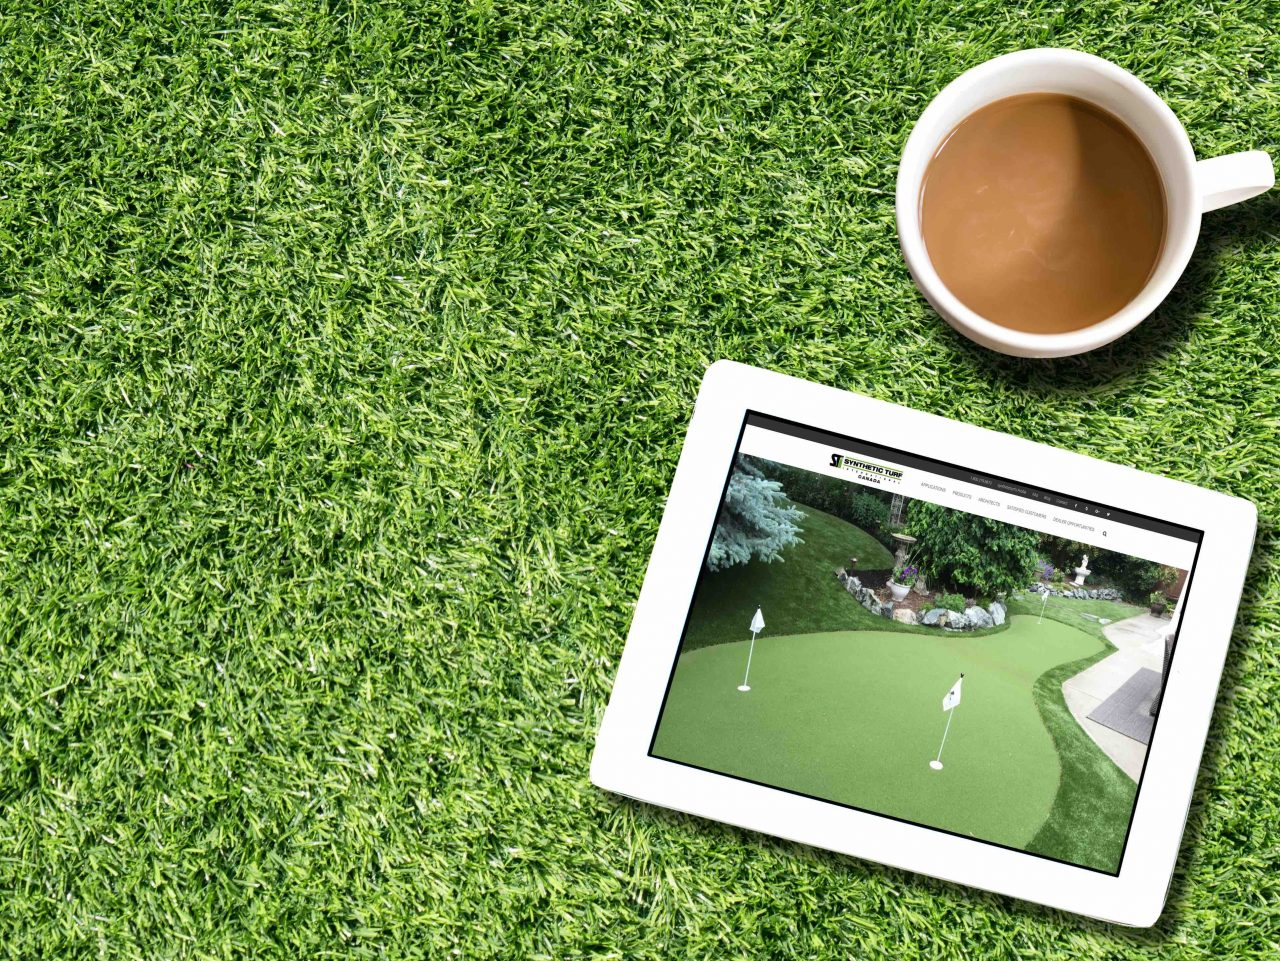 Read more on Maintaining Your Synthetic Turf For Back to School